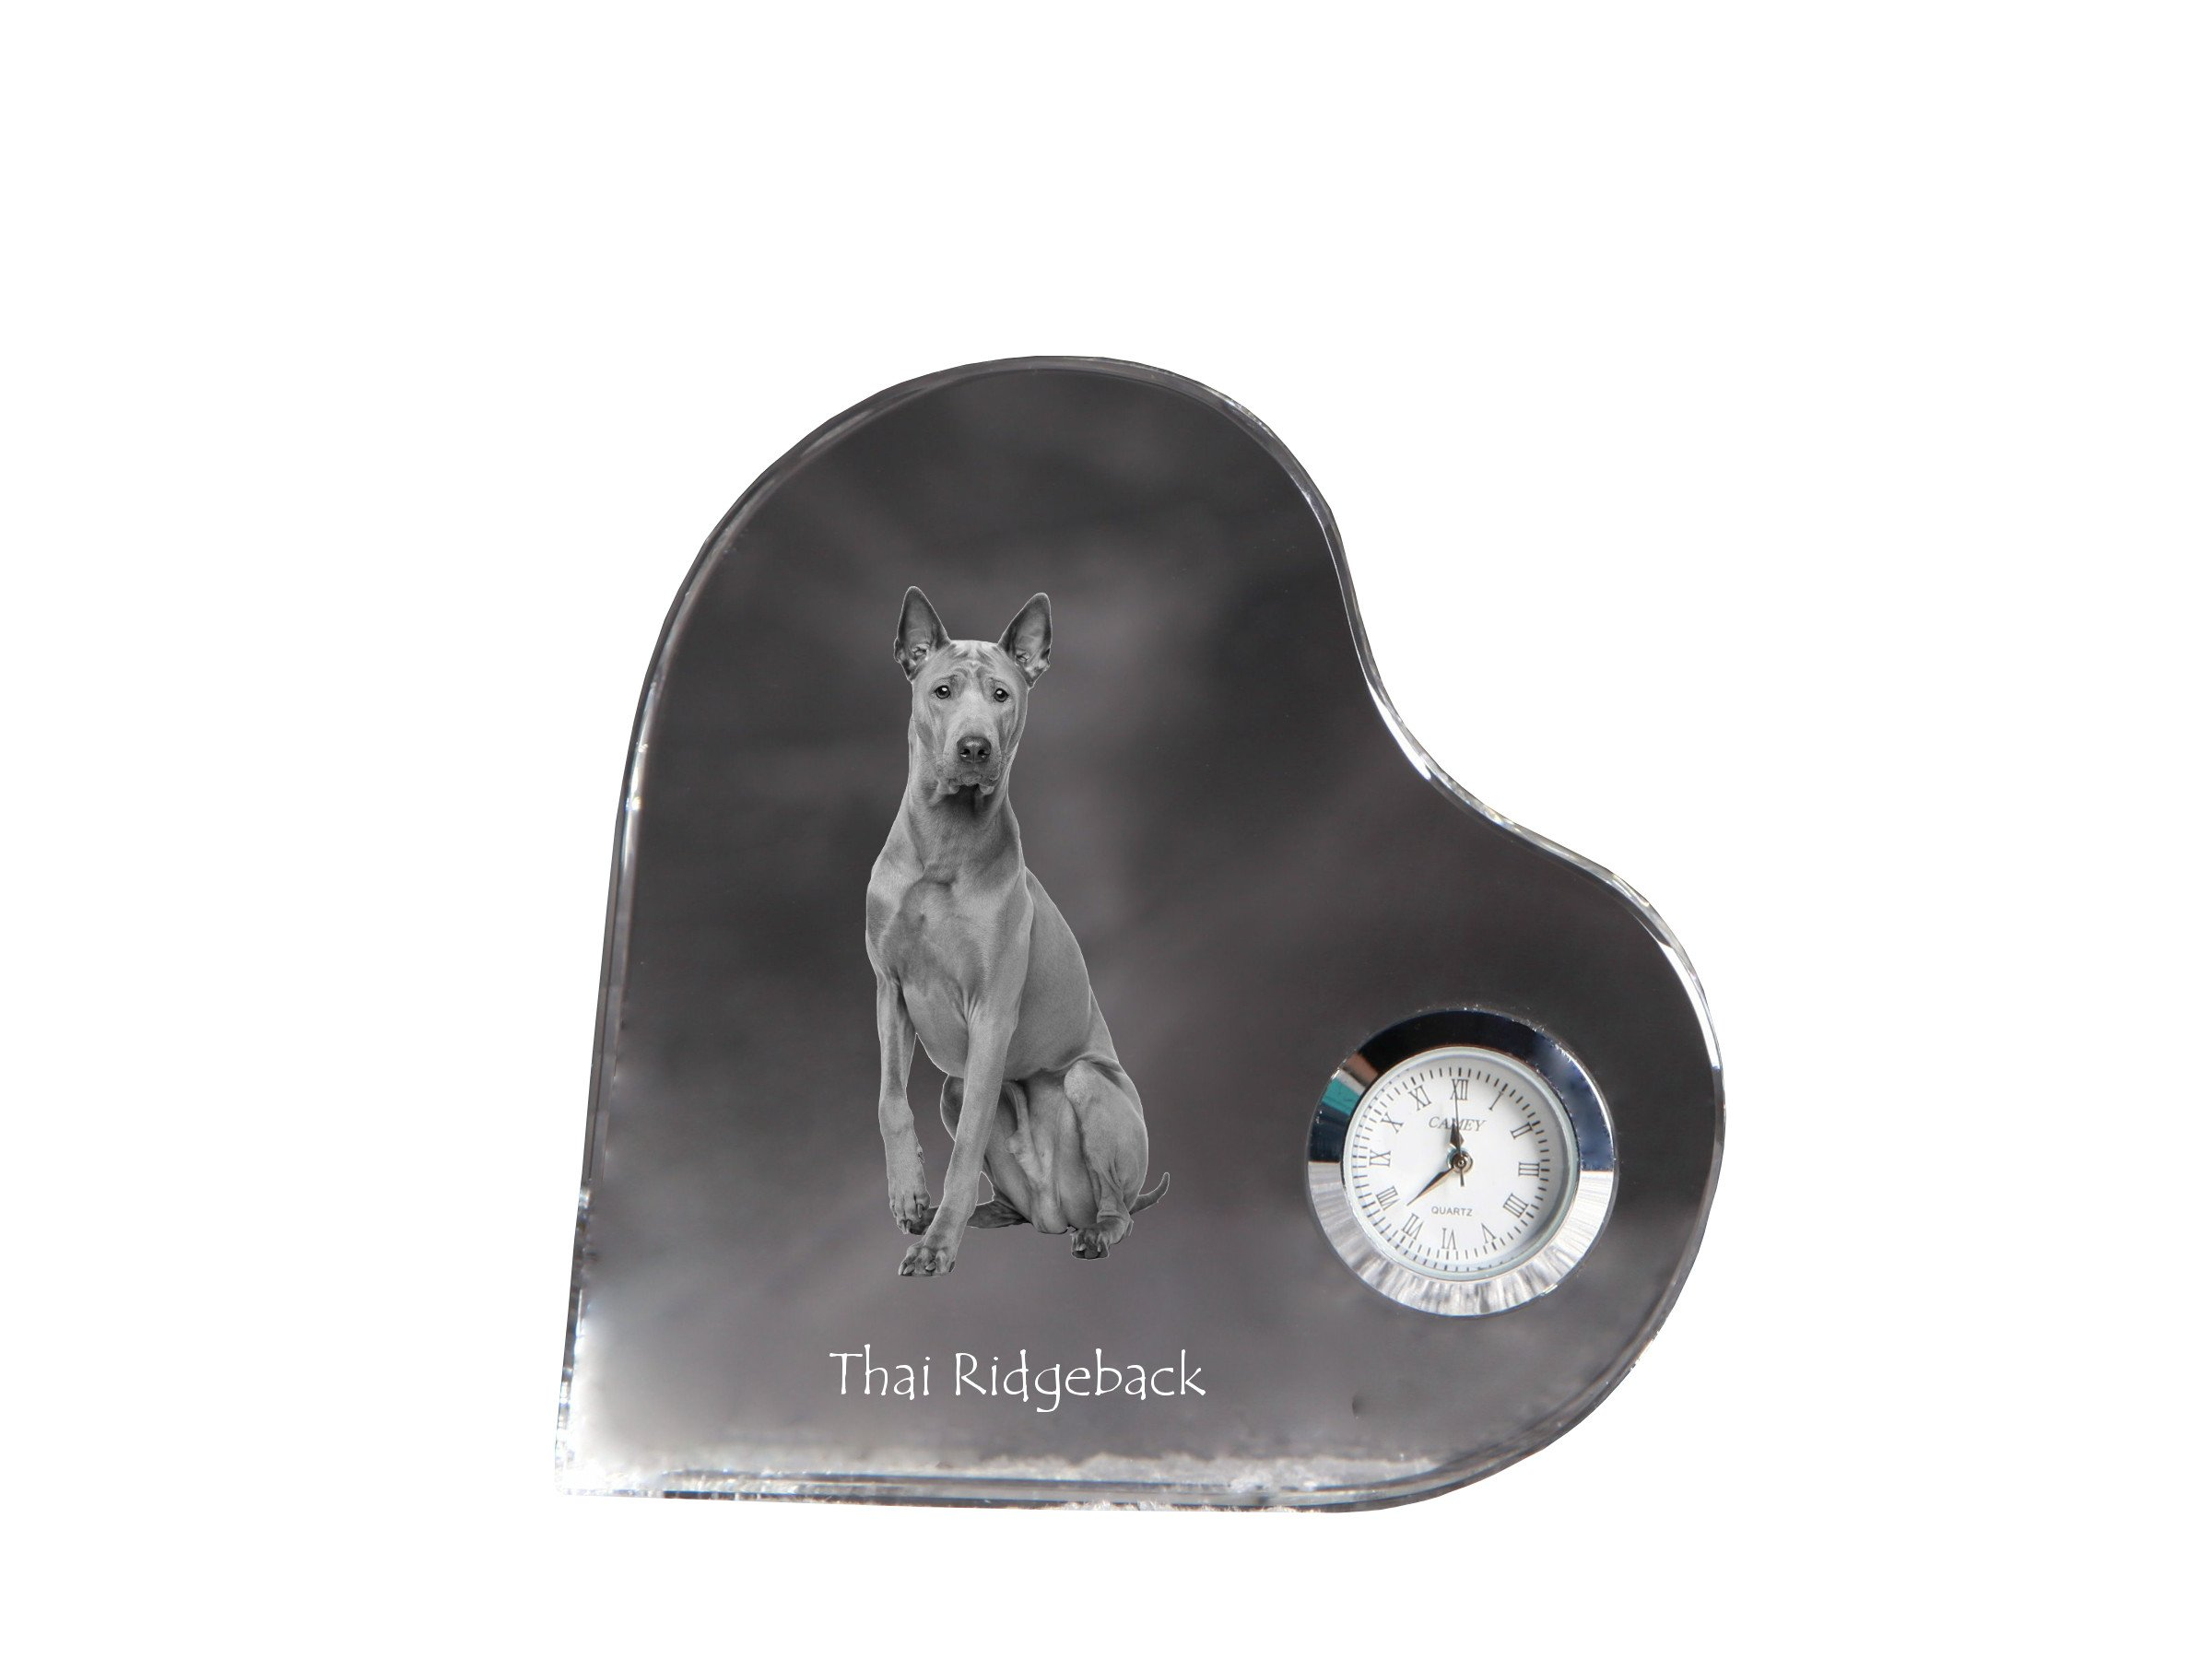 Thai Ridgeback, heart shaped crystal clock with an image of a dog by Art Dog Ltd.